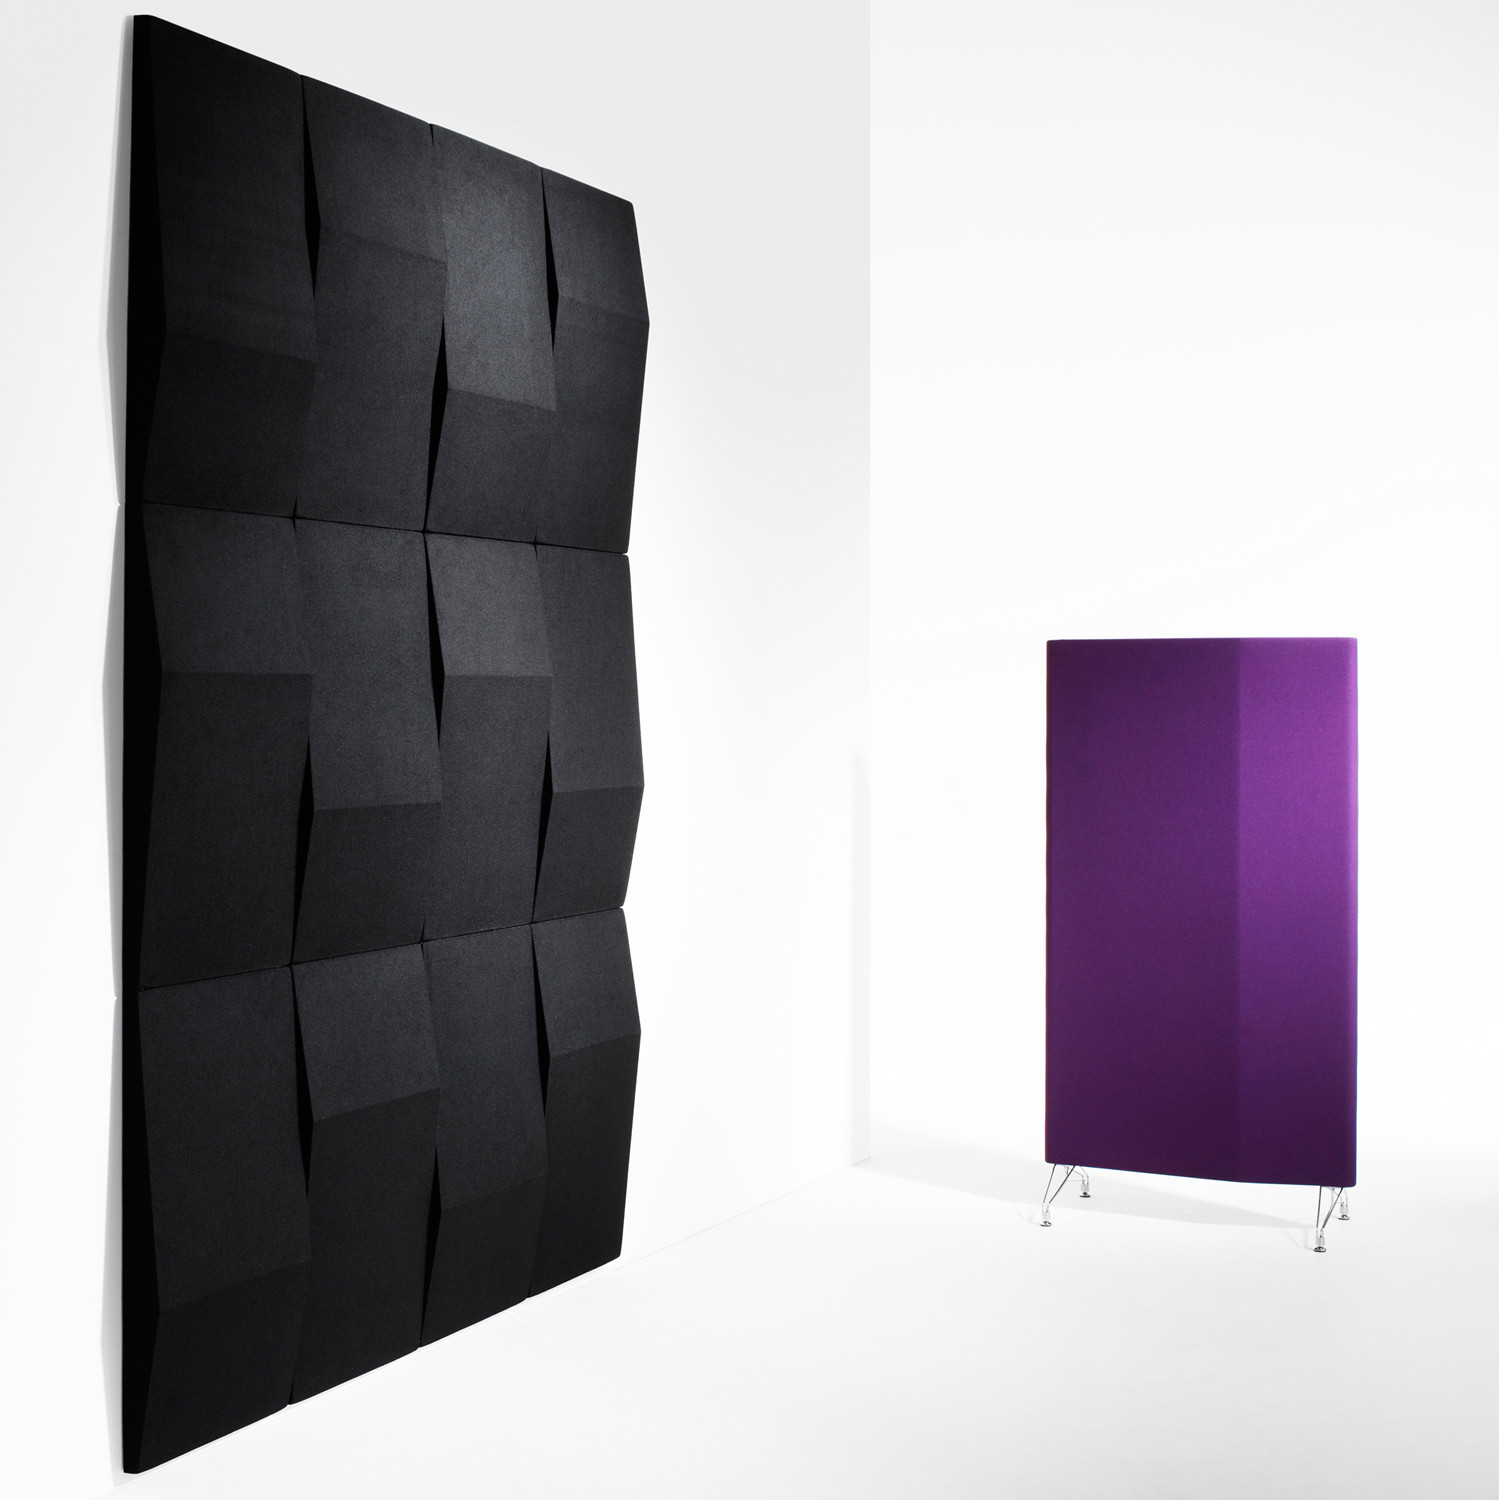 Triline Sound Absorbing Wall Panels